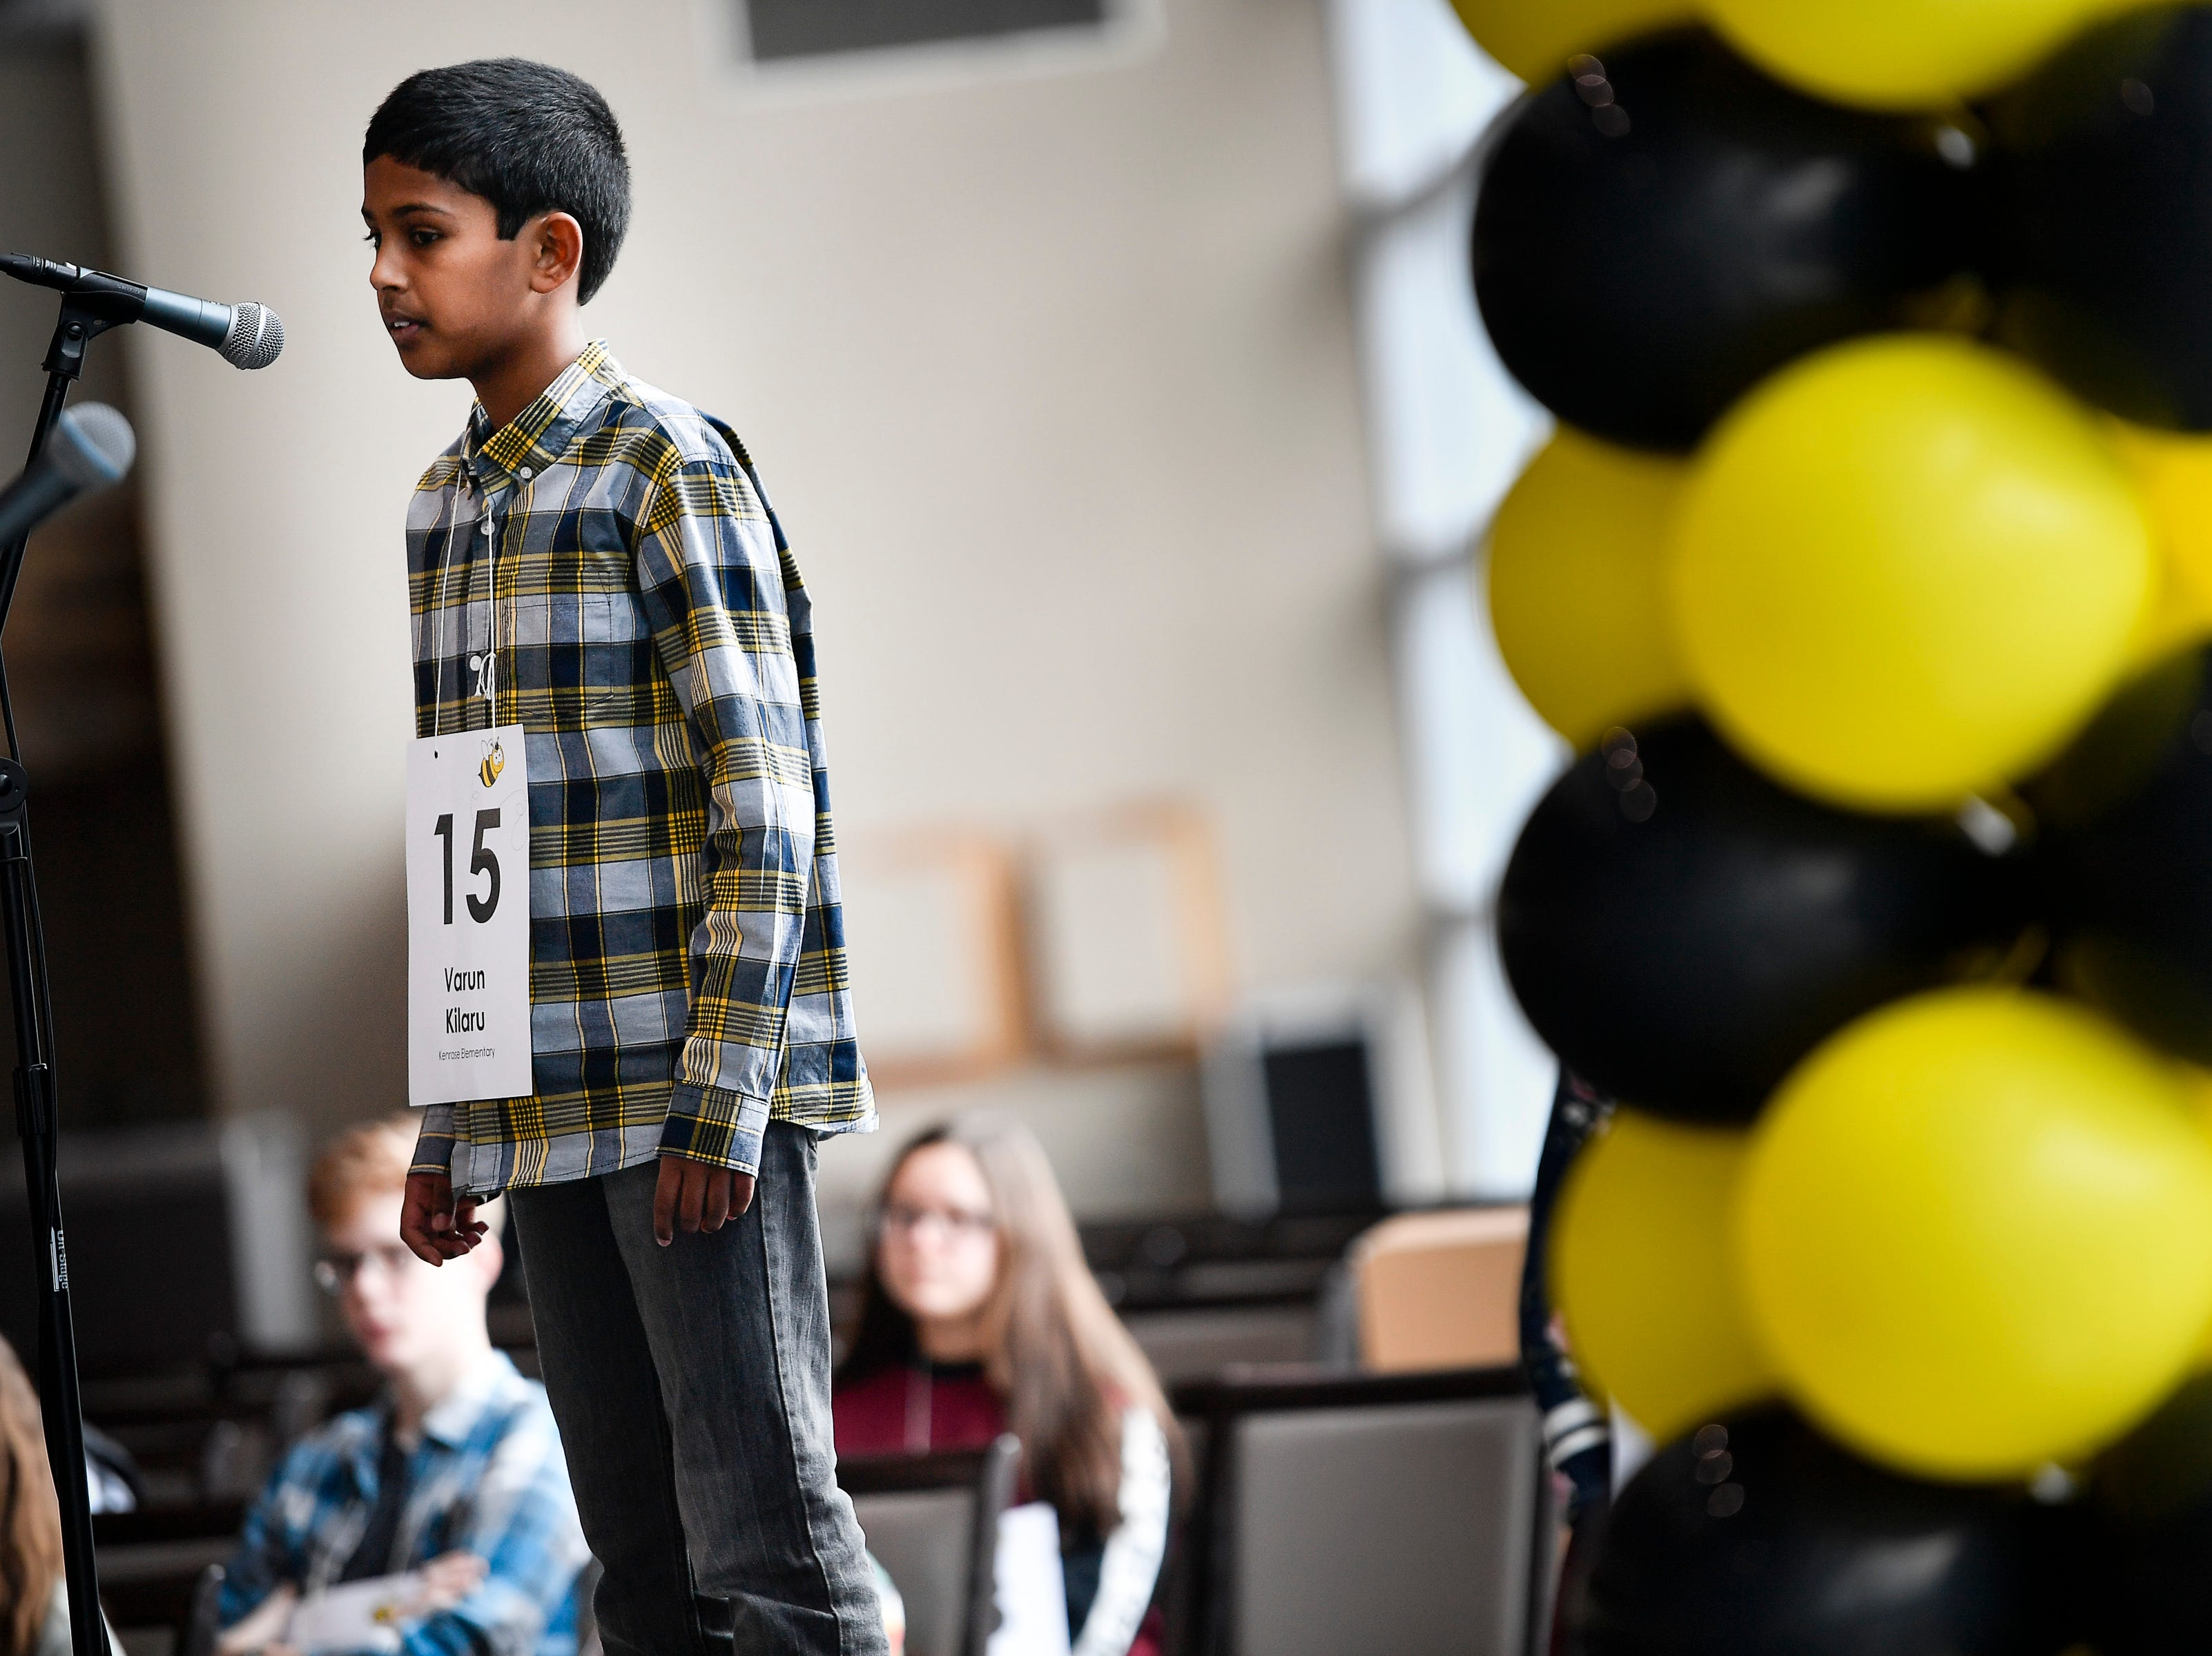 Varun Kilaru competes in the Tennessee Titans Regional Spelling Bee at Nissan Stadium Saturday, Feb. 16, 2019 in Nashville, Tenn.